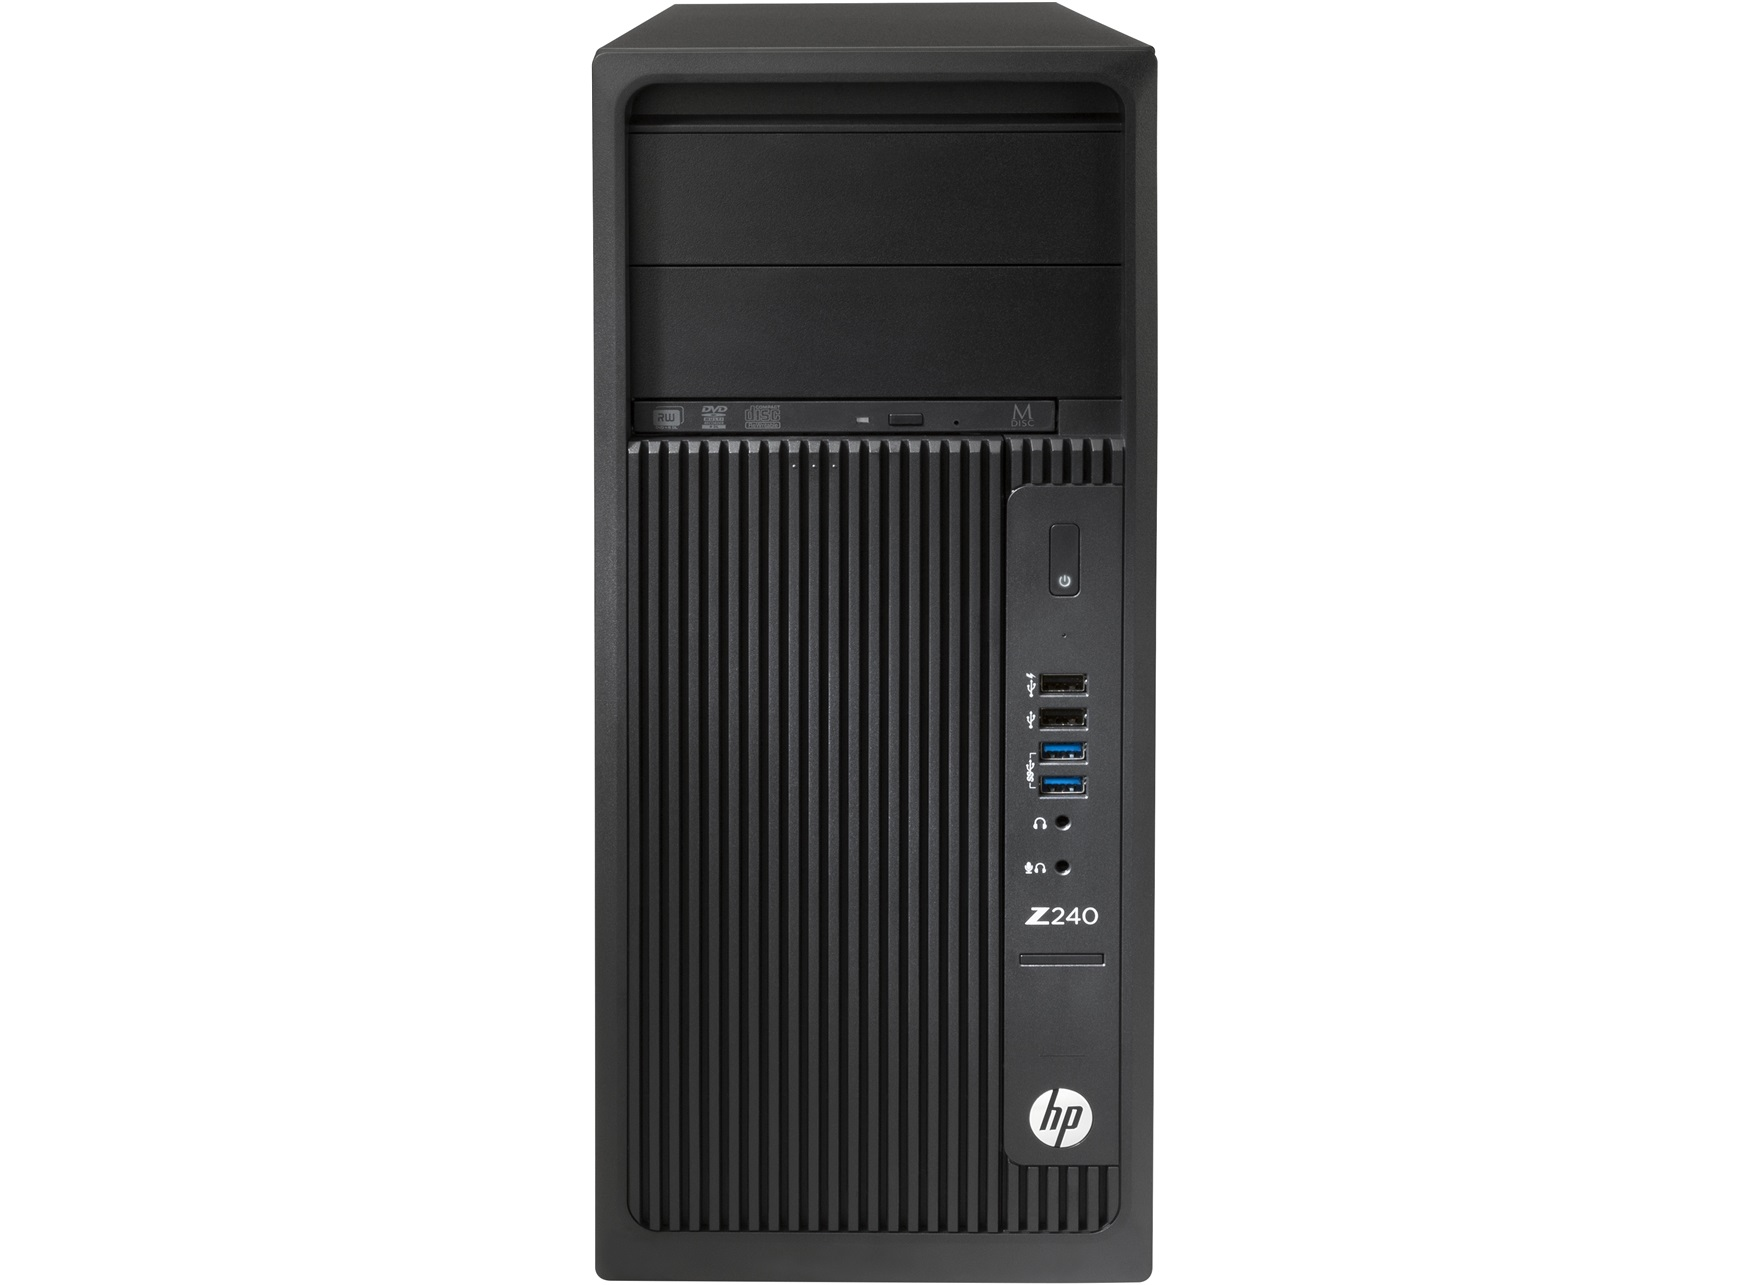 HP Z240 TWR Intel i7-7700 3.6GHz/ 8GB DDR4-2133 nECC (2x4GB)/256GB SSD 2,5''/Intel HD GFX 630/Win 10 Pro